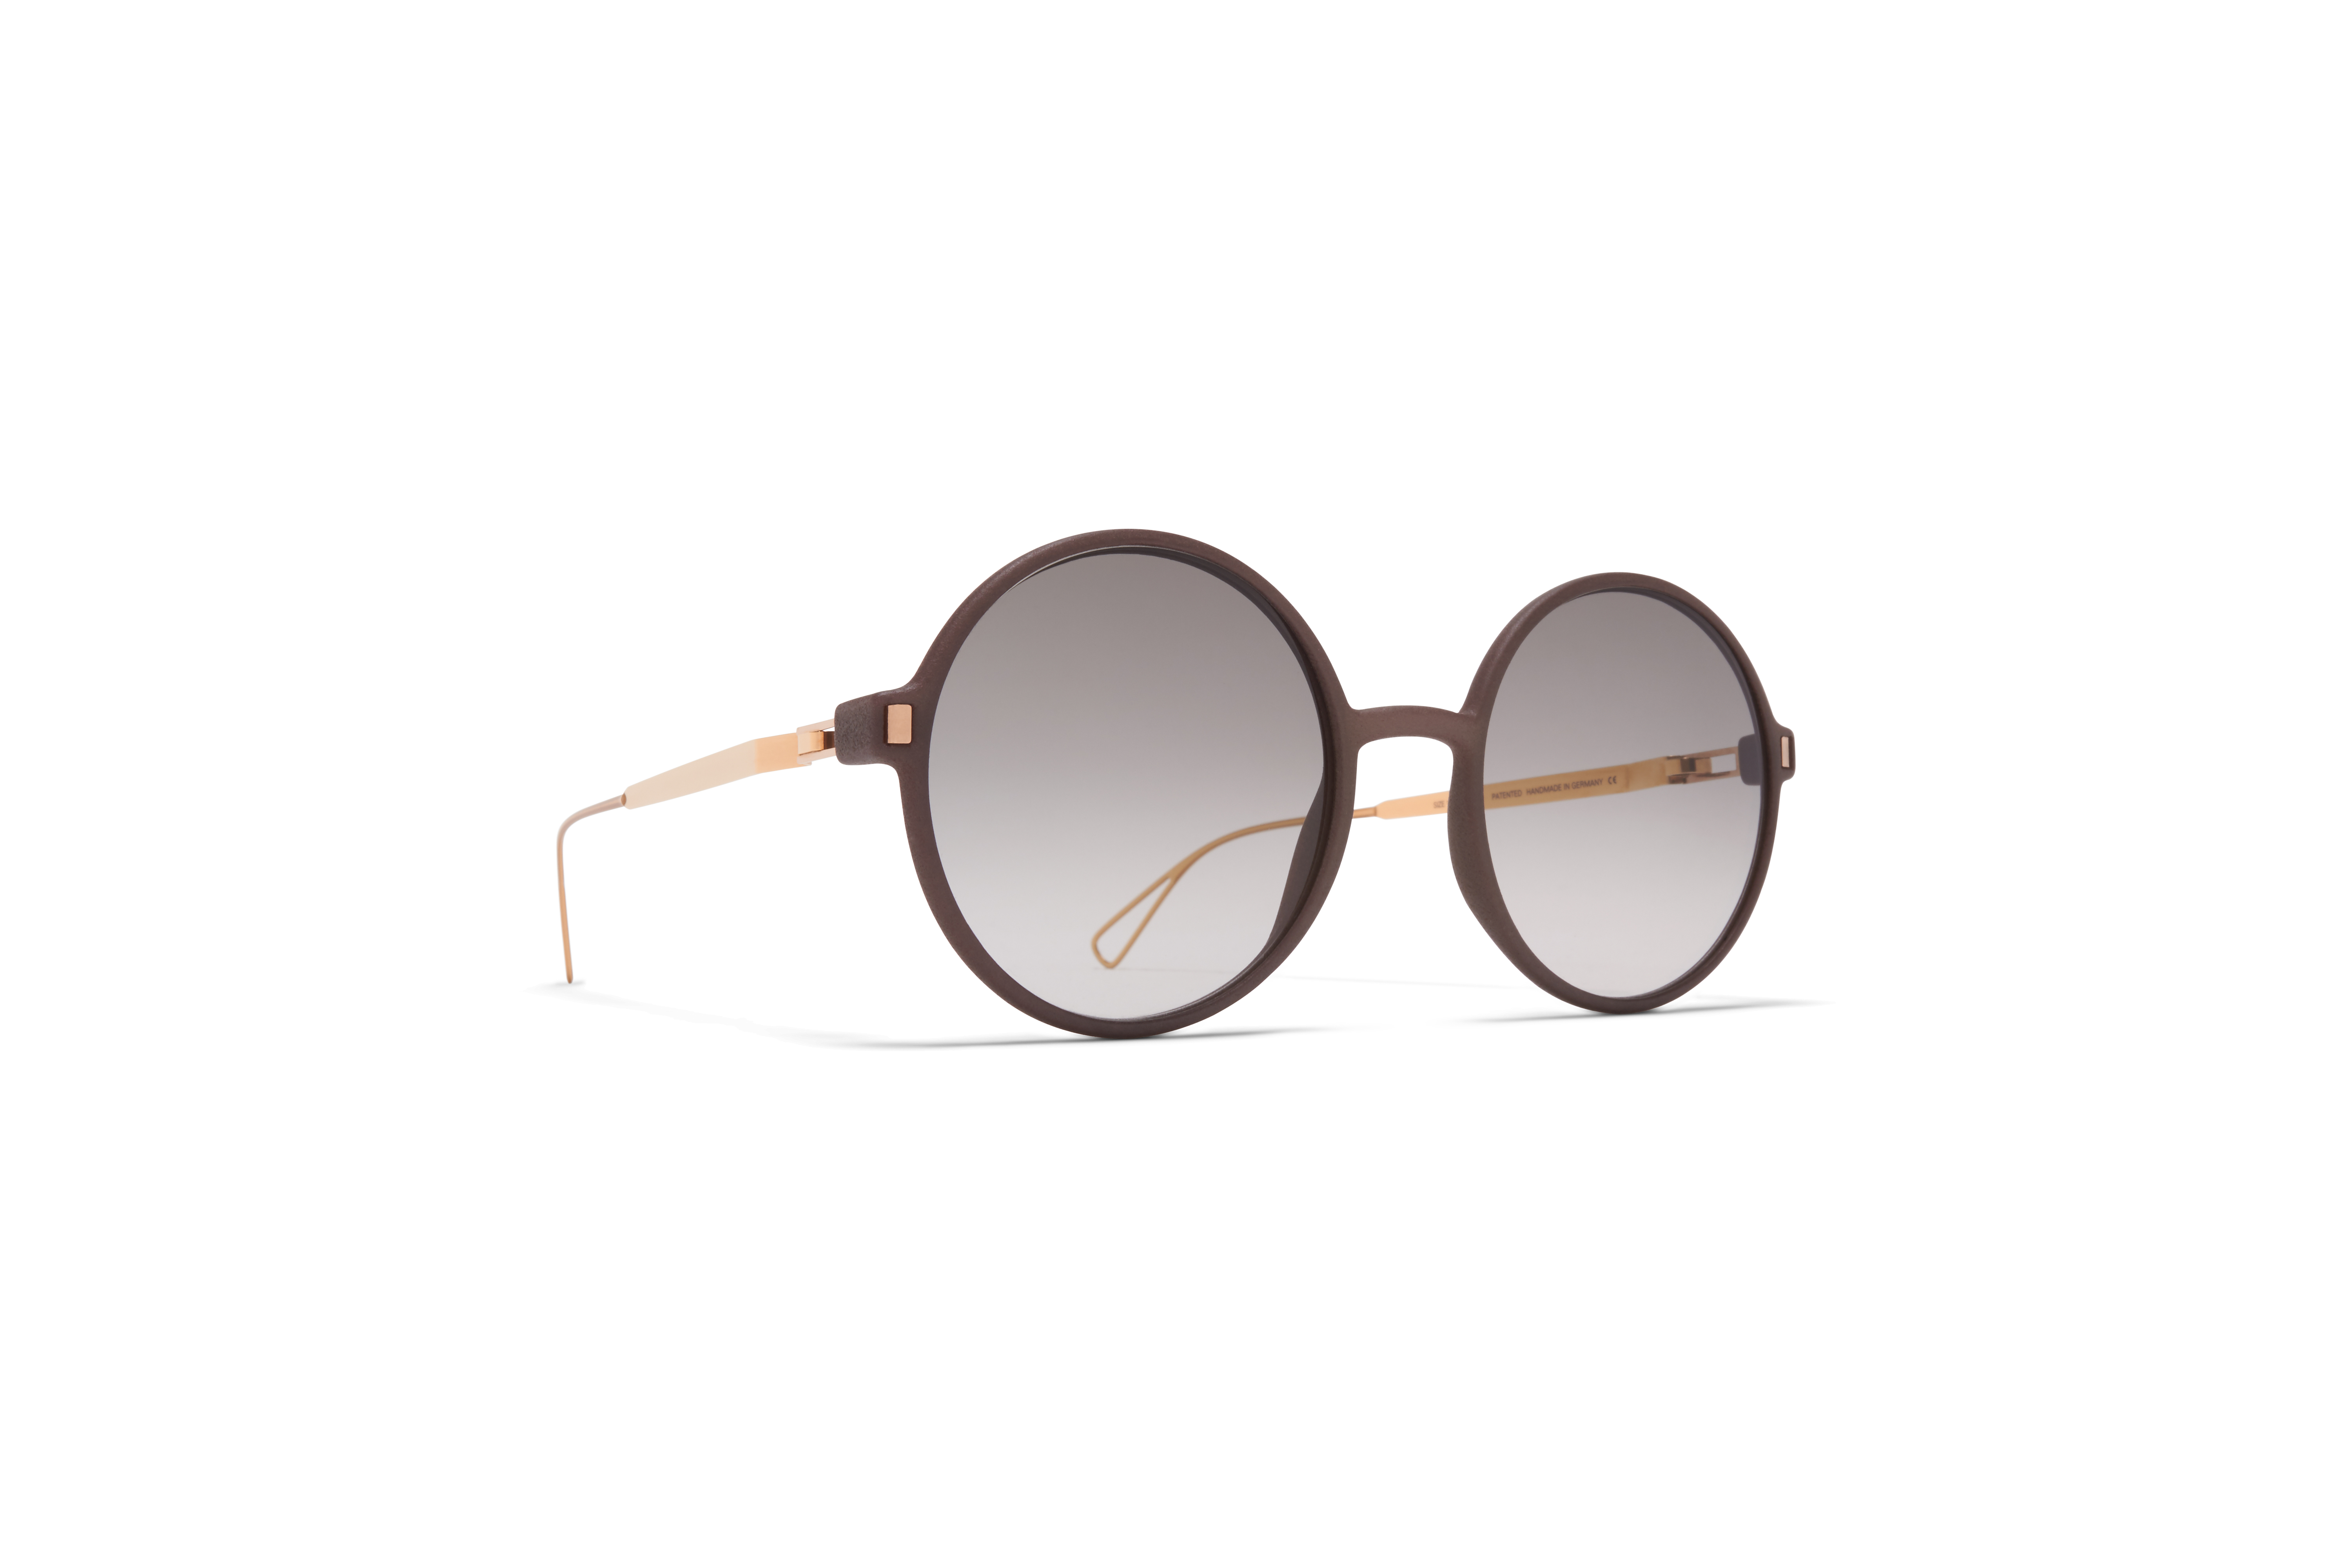 MYKITA Mylon Sun Haze Mh17 Taupe Grey Champagne Gold Original Grey Gradient